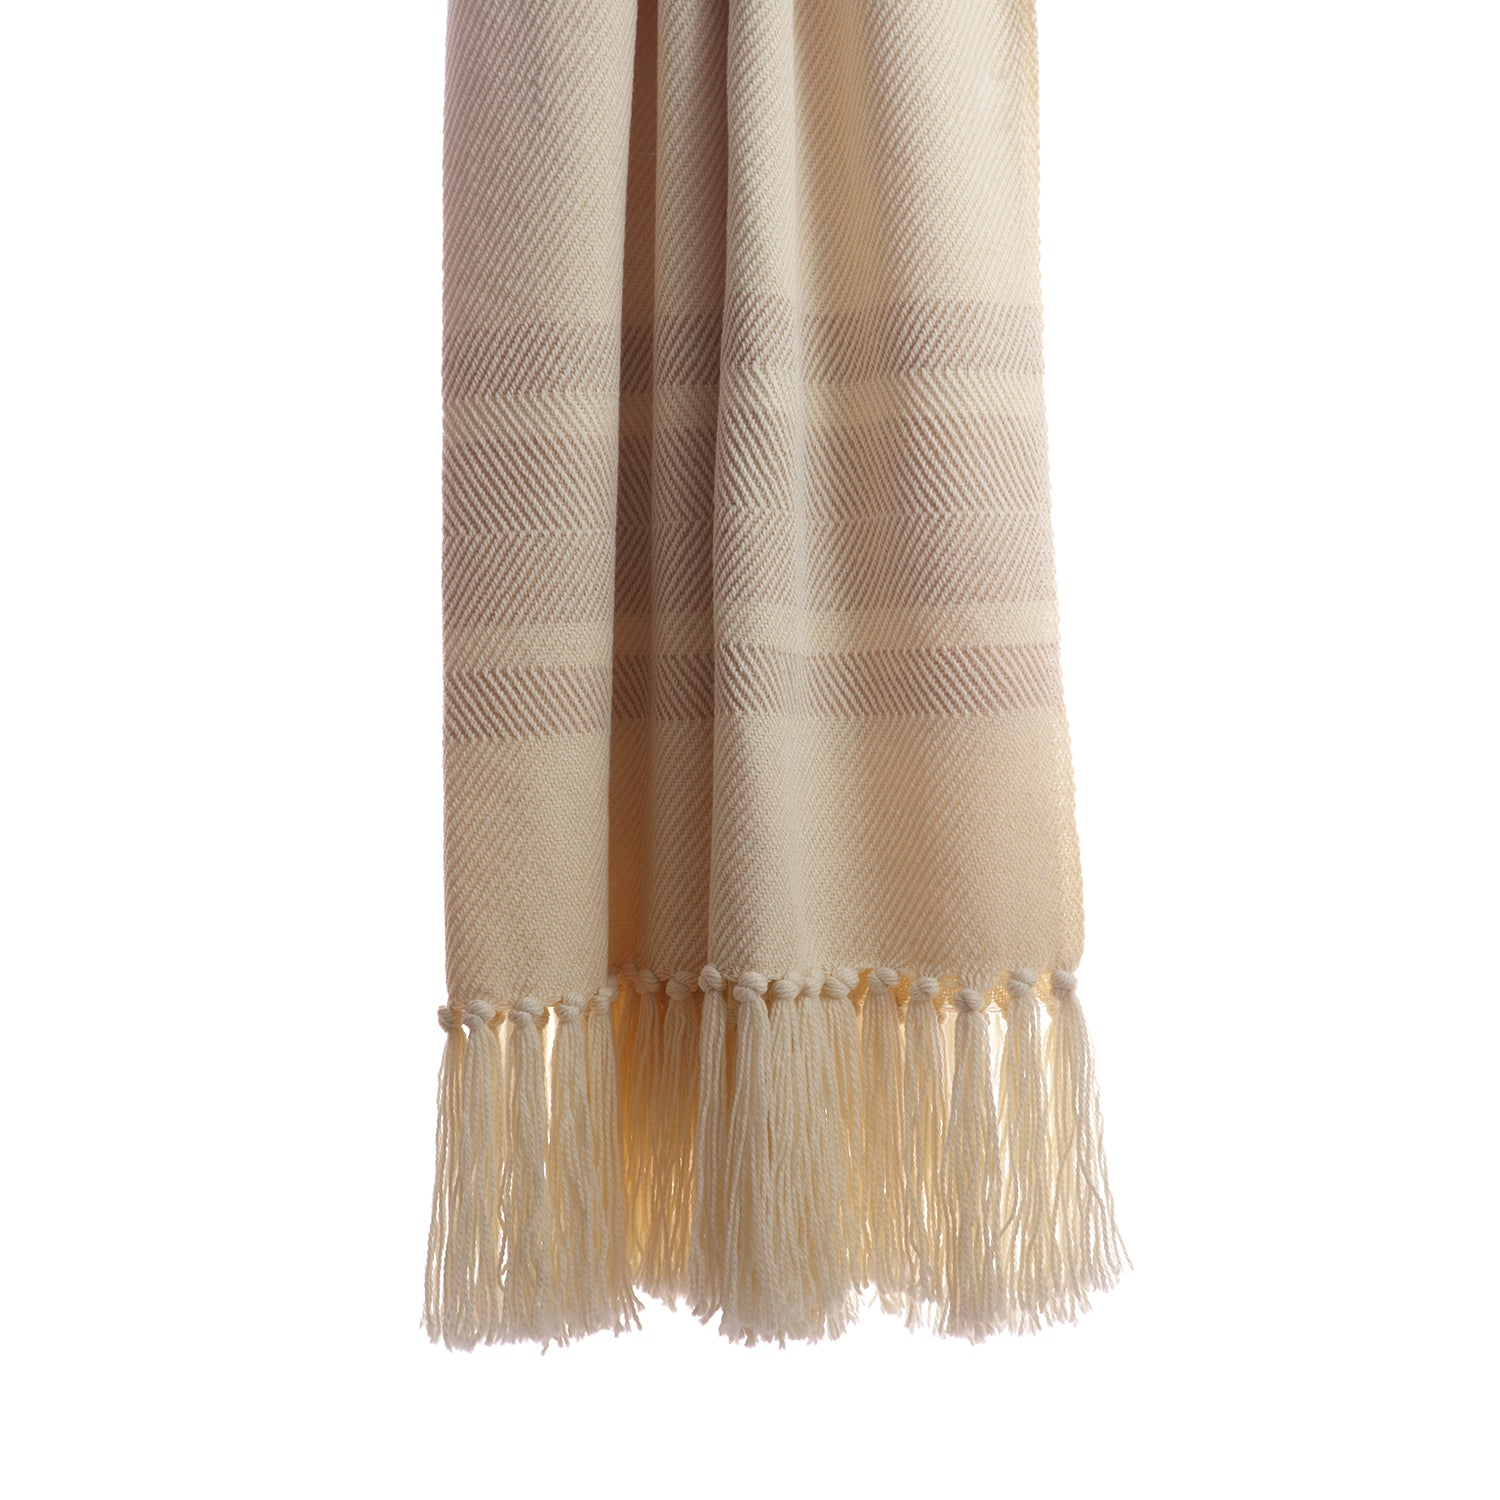 Camel Sarga Merino Throw Blanket